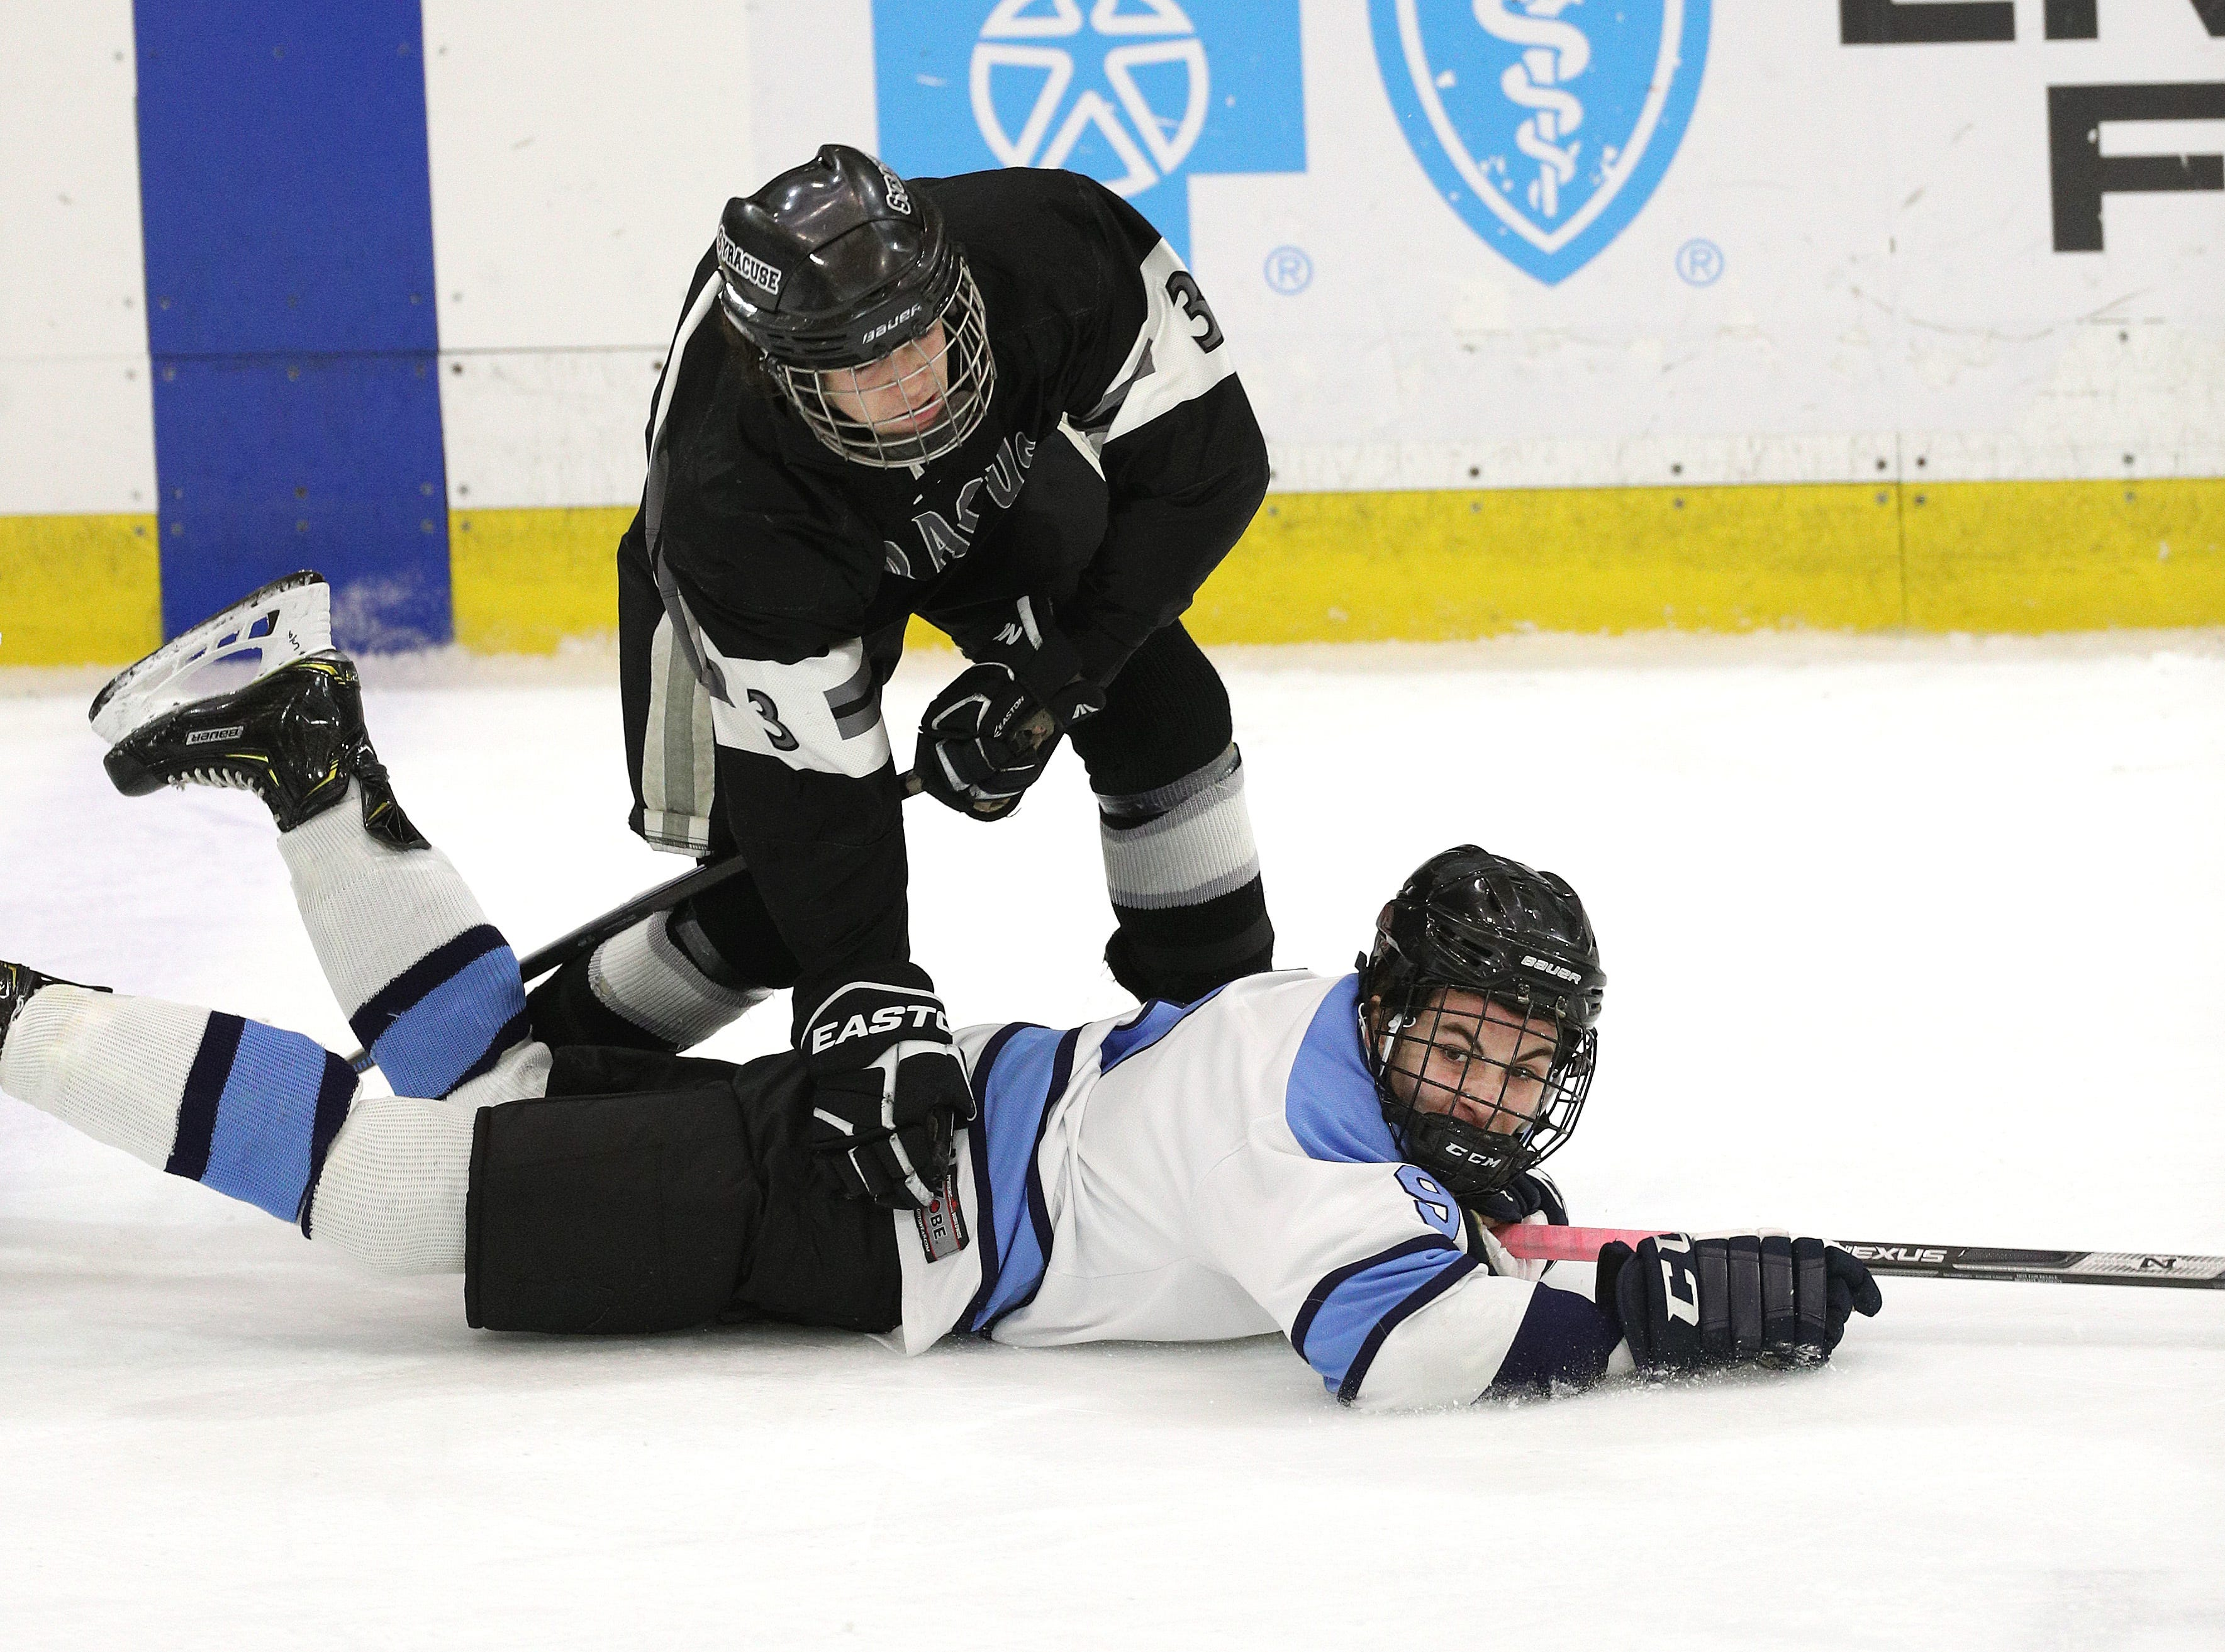 Suffern's Max Werfel is dumped near the blue line by Syracuse's Kyle Lamson.